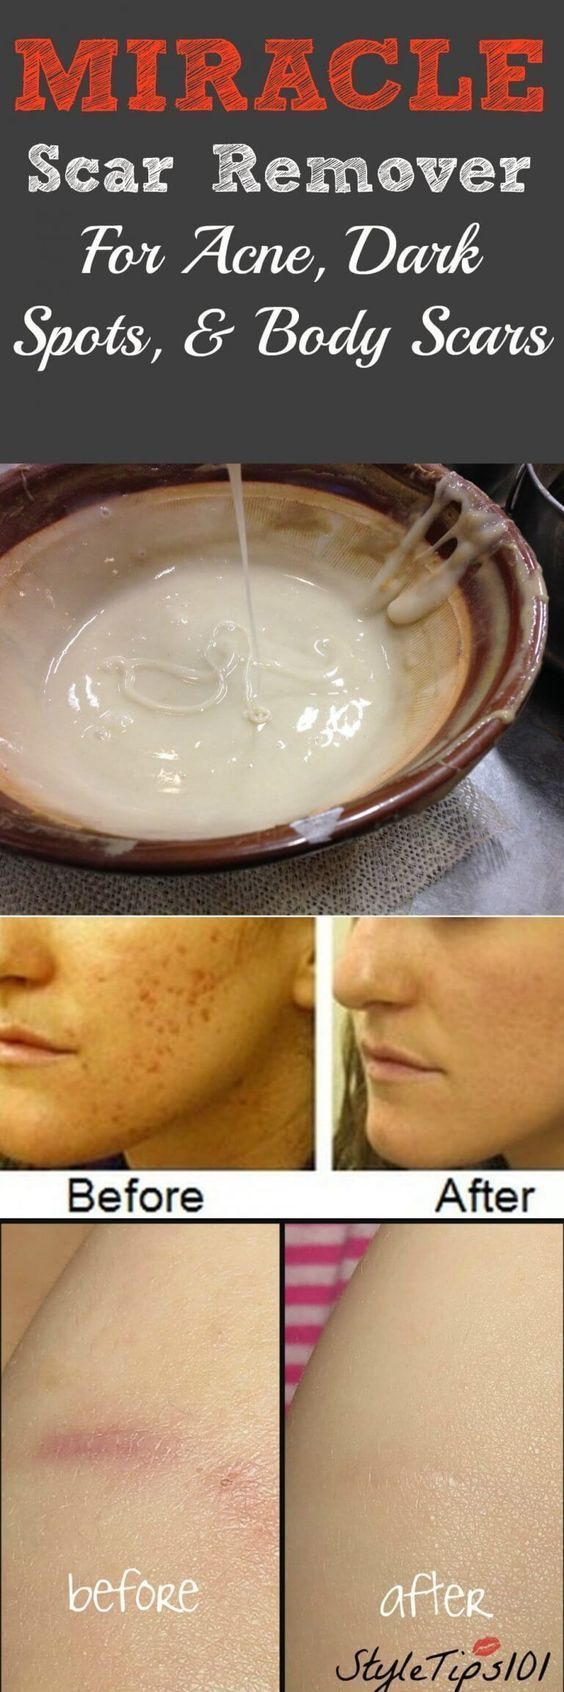 best Acne images on Pinterest  Beauty hacks Beauty makeup and